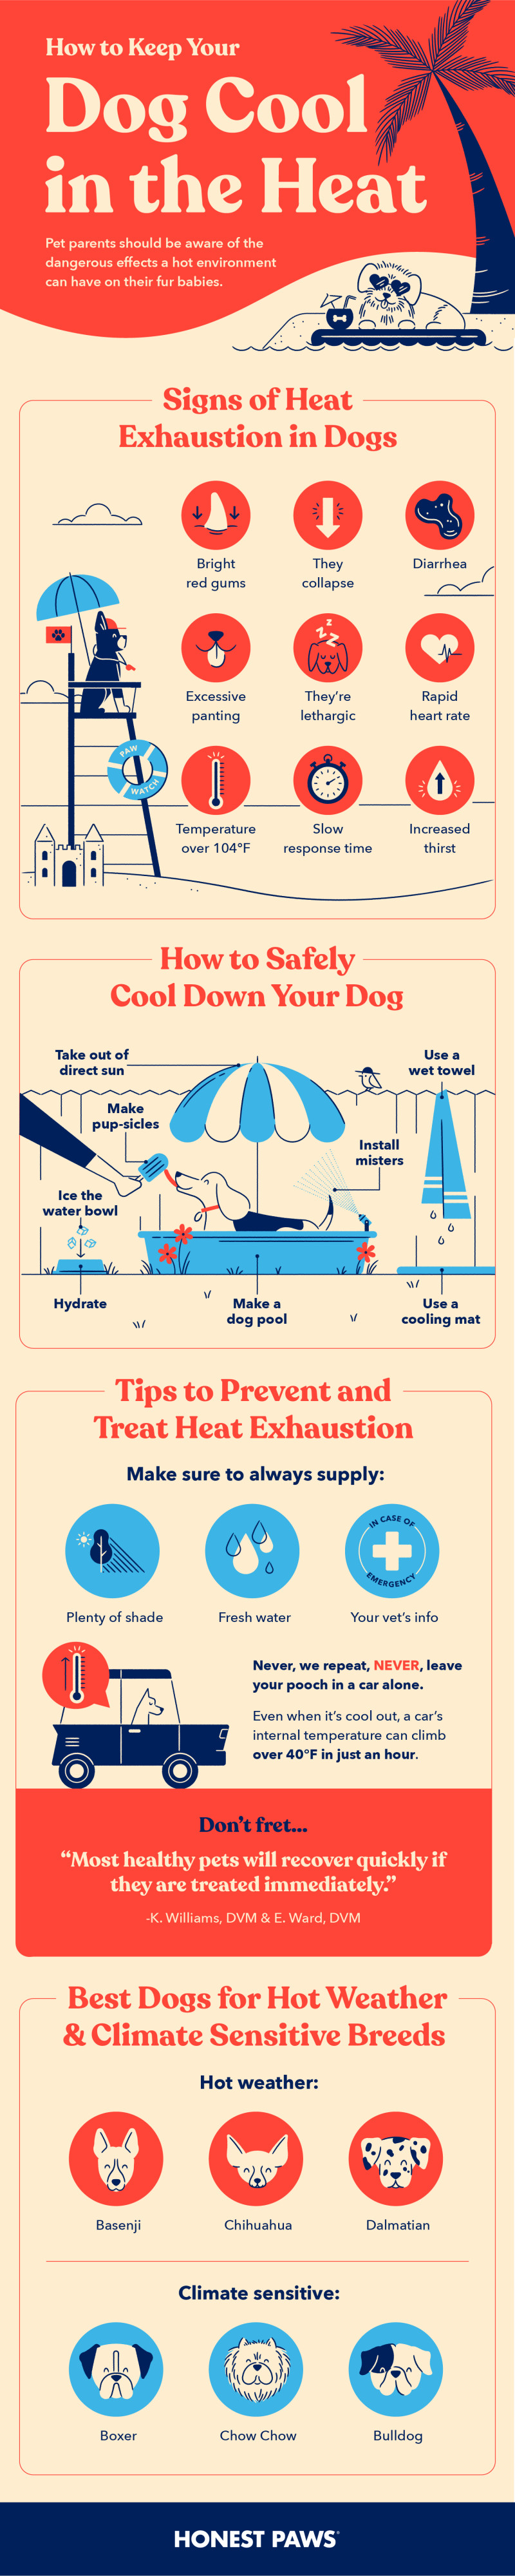 An infographic titled how to keep your dog cool in the heat including signs or heat exhaustion in dogs, how to safely cool down your dog, tips to prevent heat exhaustion and the best dogs for hot weather and climate sensitive breeds